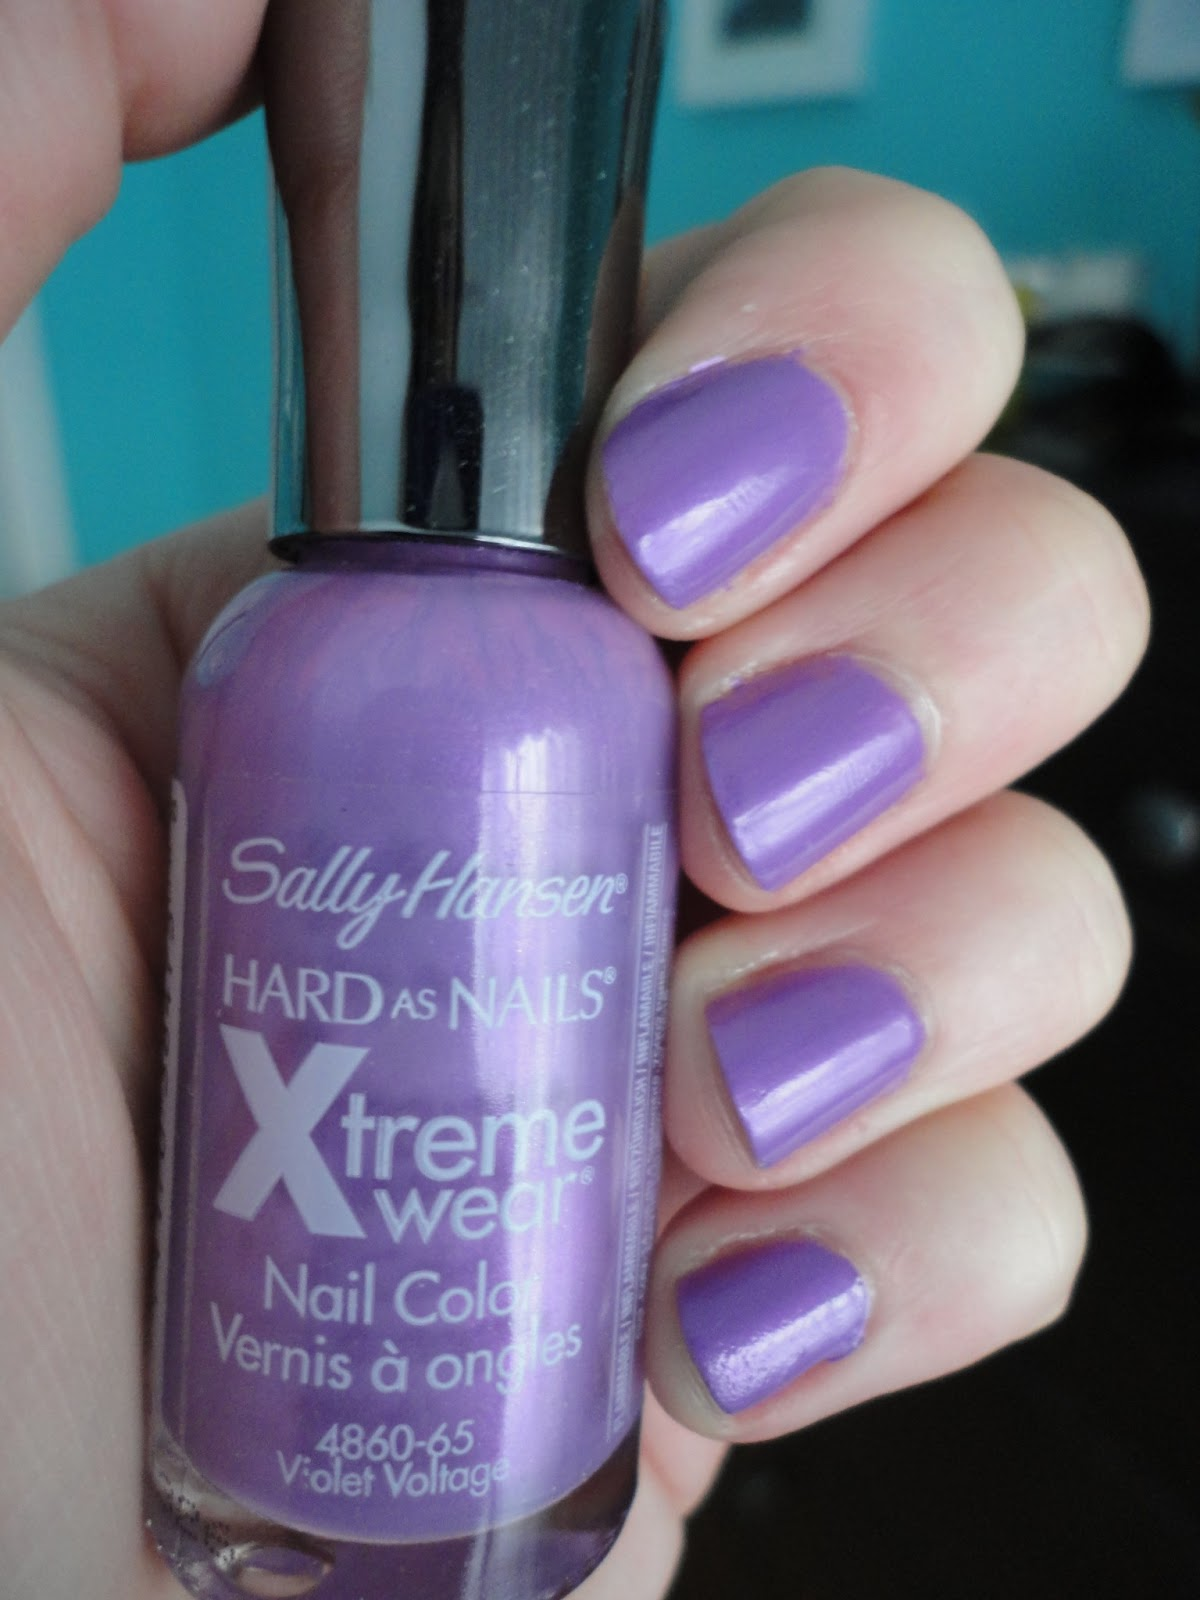 To acquire How to xtreme remove wear nail polish pictures trends